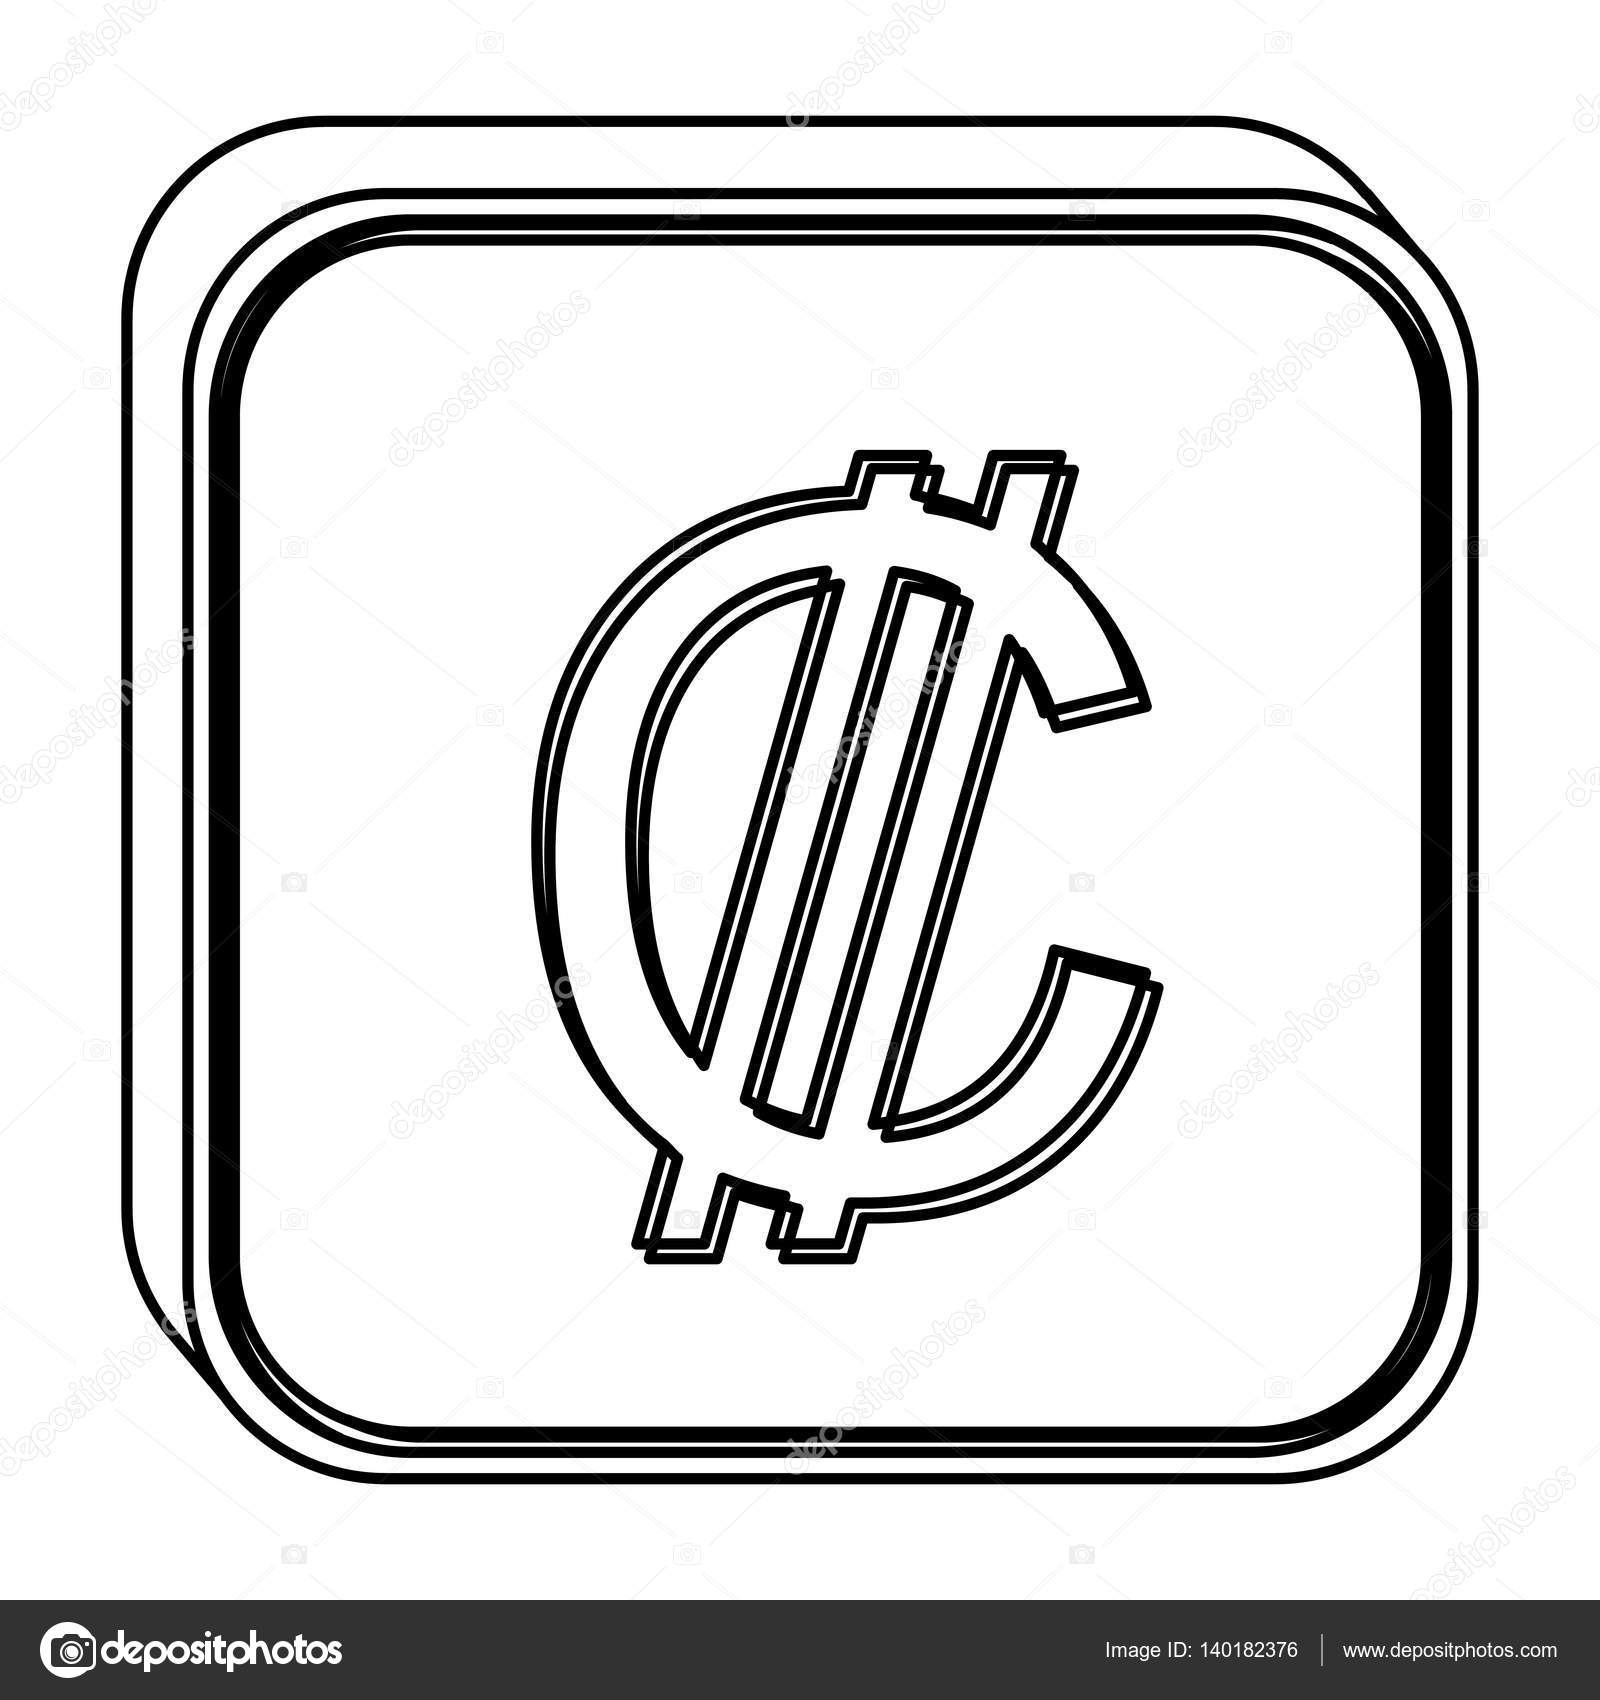 Monochrome Square Contour With Currency Symbol Of Colon Costa Rica